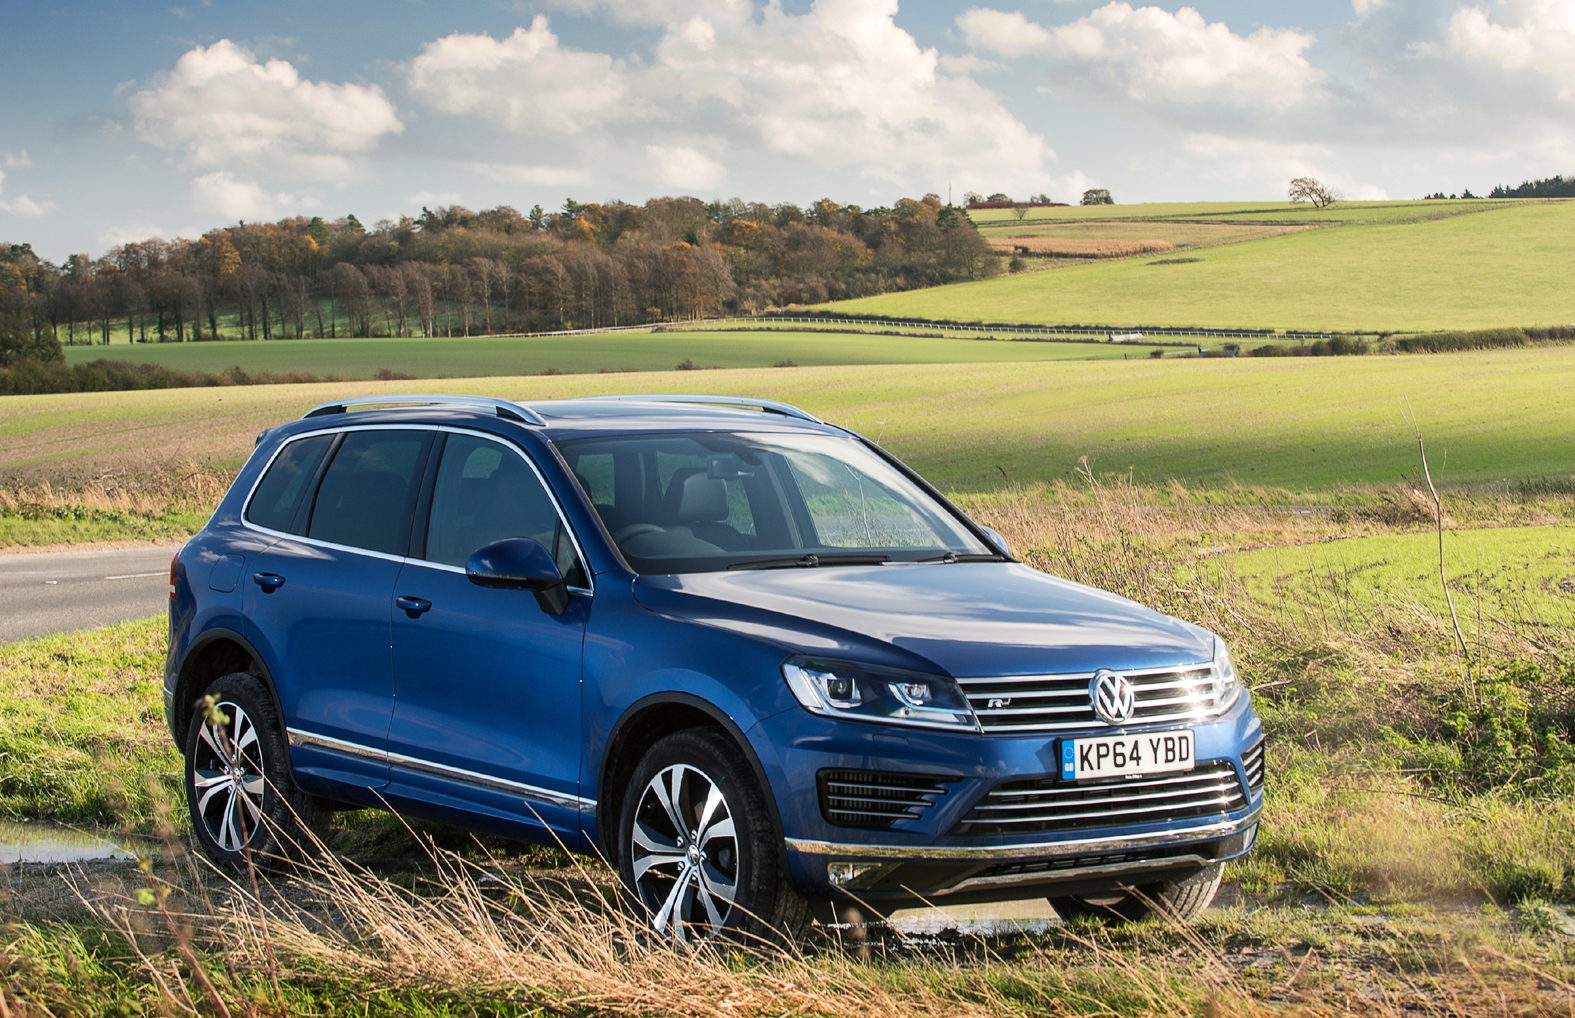 volkswagen touareg used car review eurekar. Black Bedroom Furniture Sets. Home Design Ideas